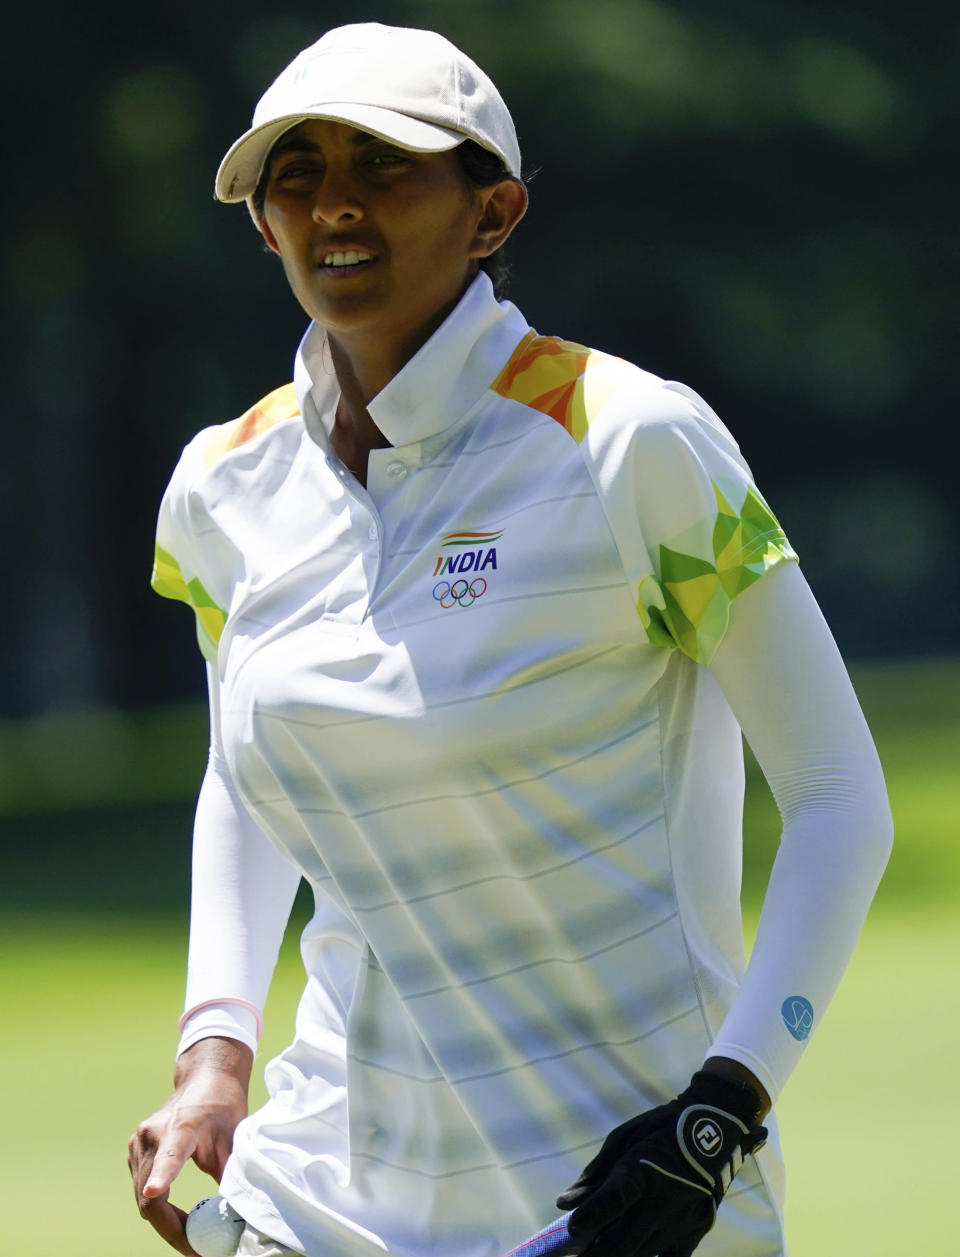 Aditi Ashok, of India, walks on the 13th hole during the second round of the women's golf event at the 2020 Summer Olympics, Thursday, Aug. 5, 2021, at the Kasumigaseki Country Club in Kawagoe, Japan. (AP Photo/Matt York)